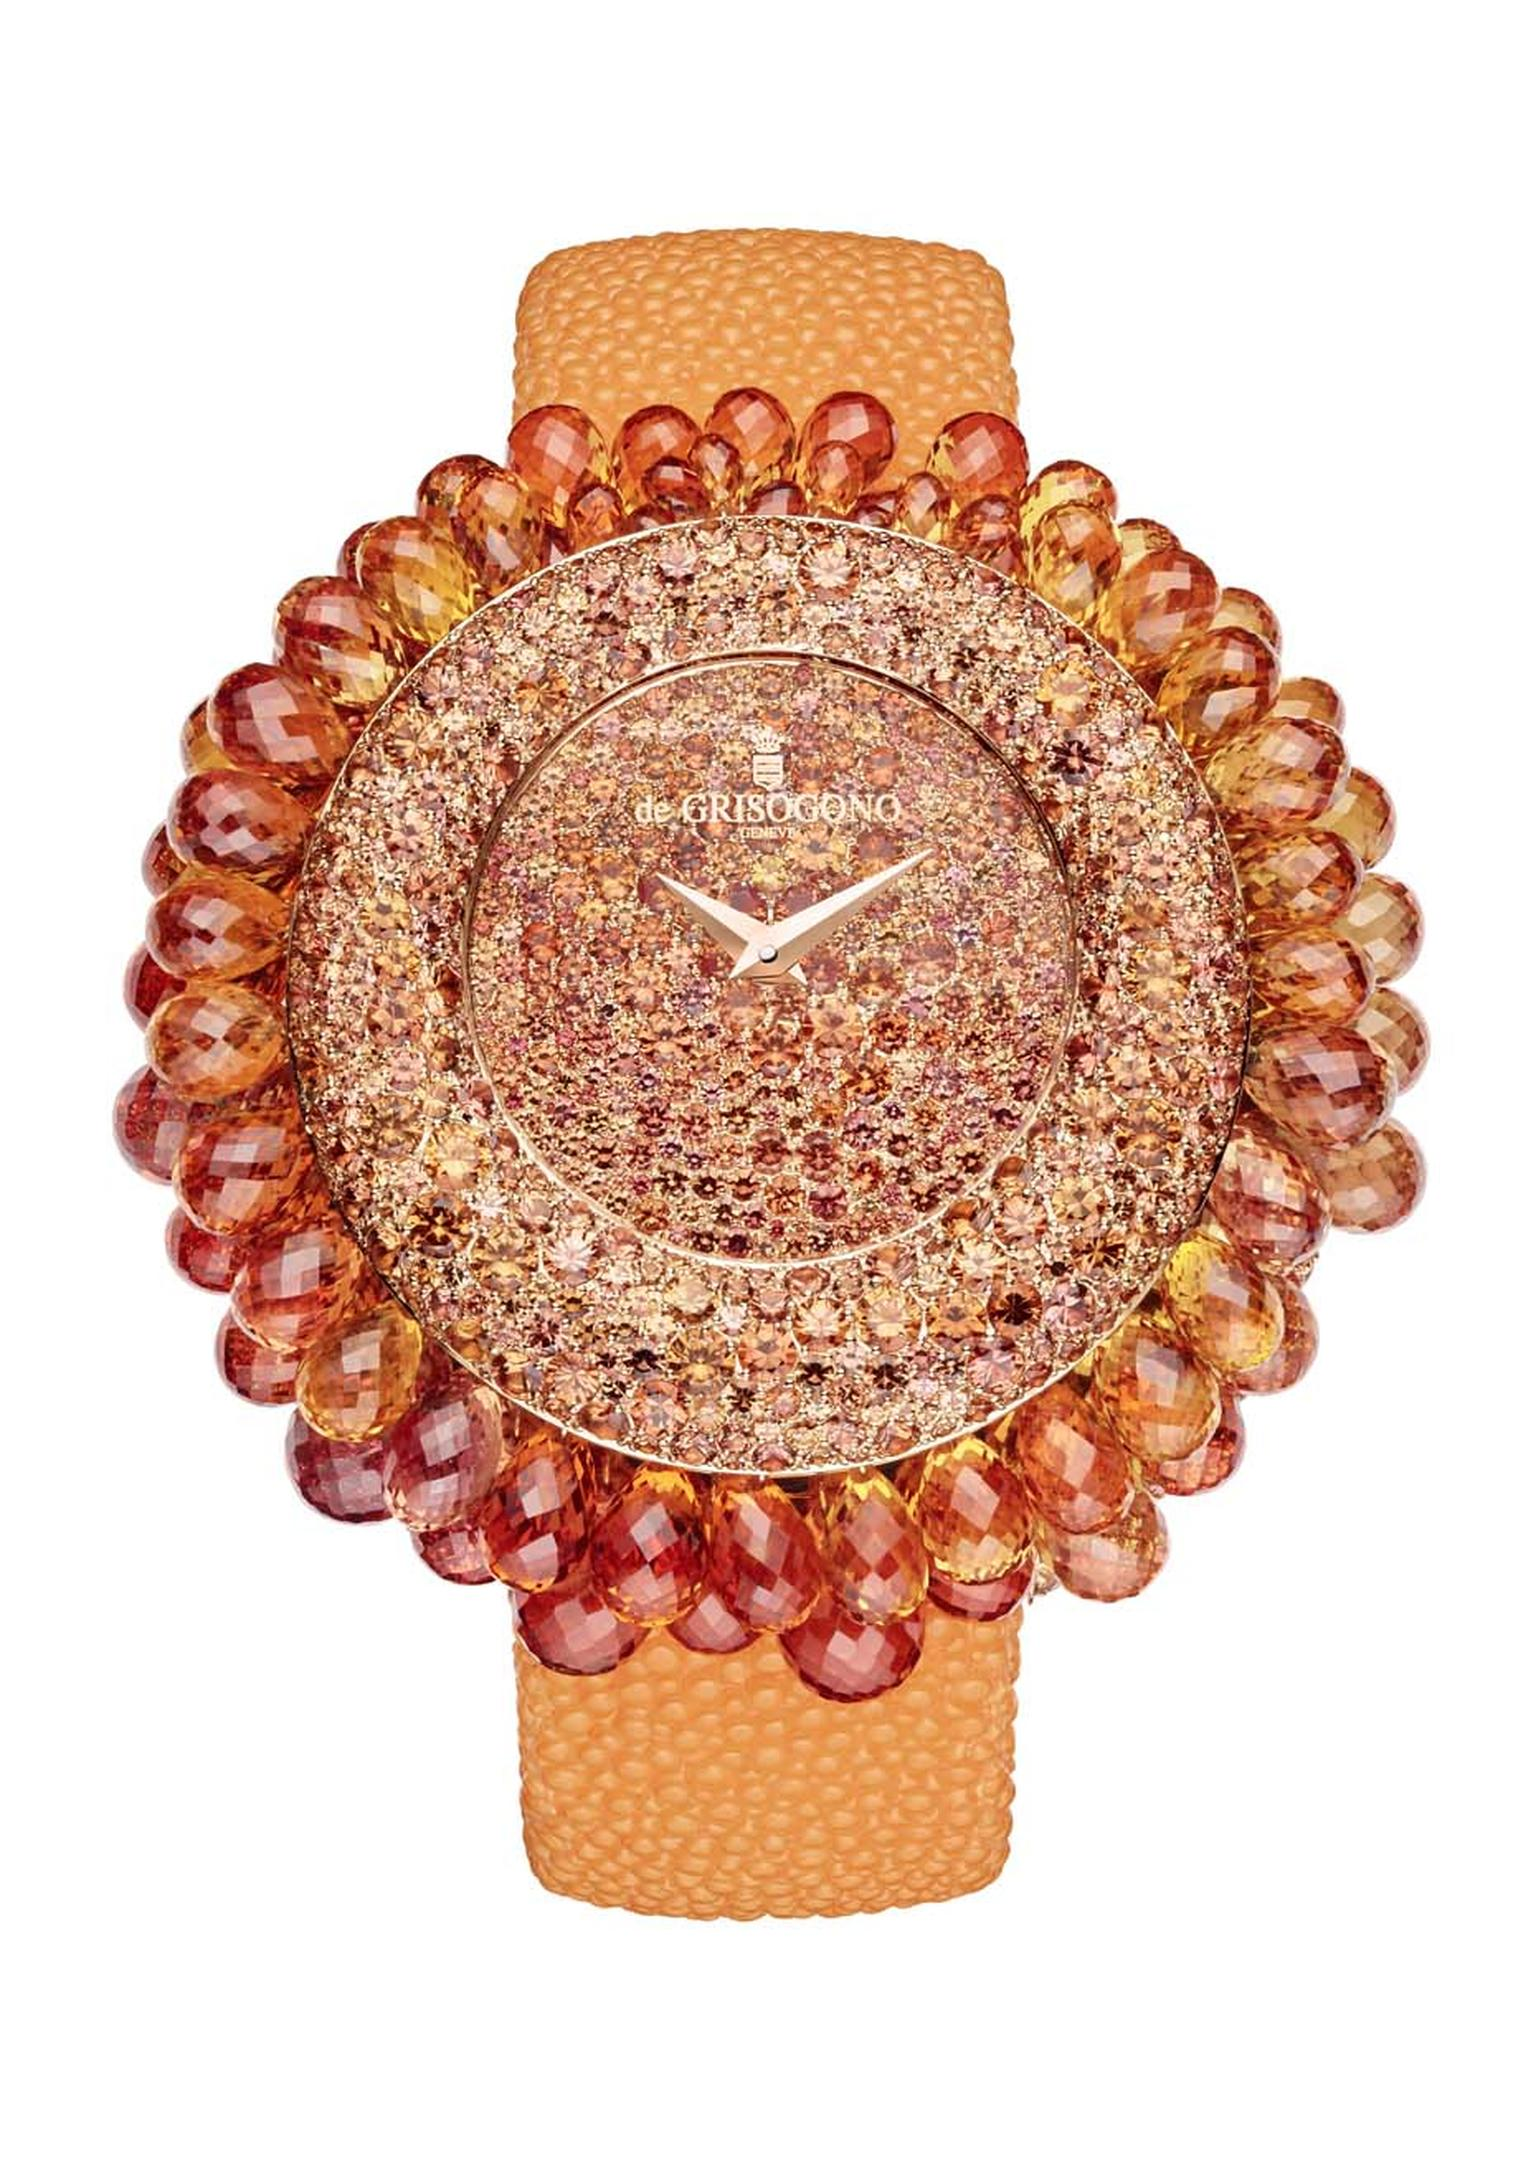 de GRISOGONO's Grappoli watch is the fruit of expert gem-setters and stone cutters. A total of 120 hours is spent on each de GRISOGONO Grappoli masterpiece.